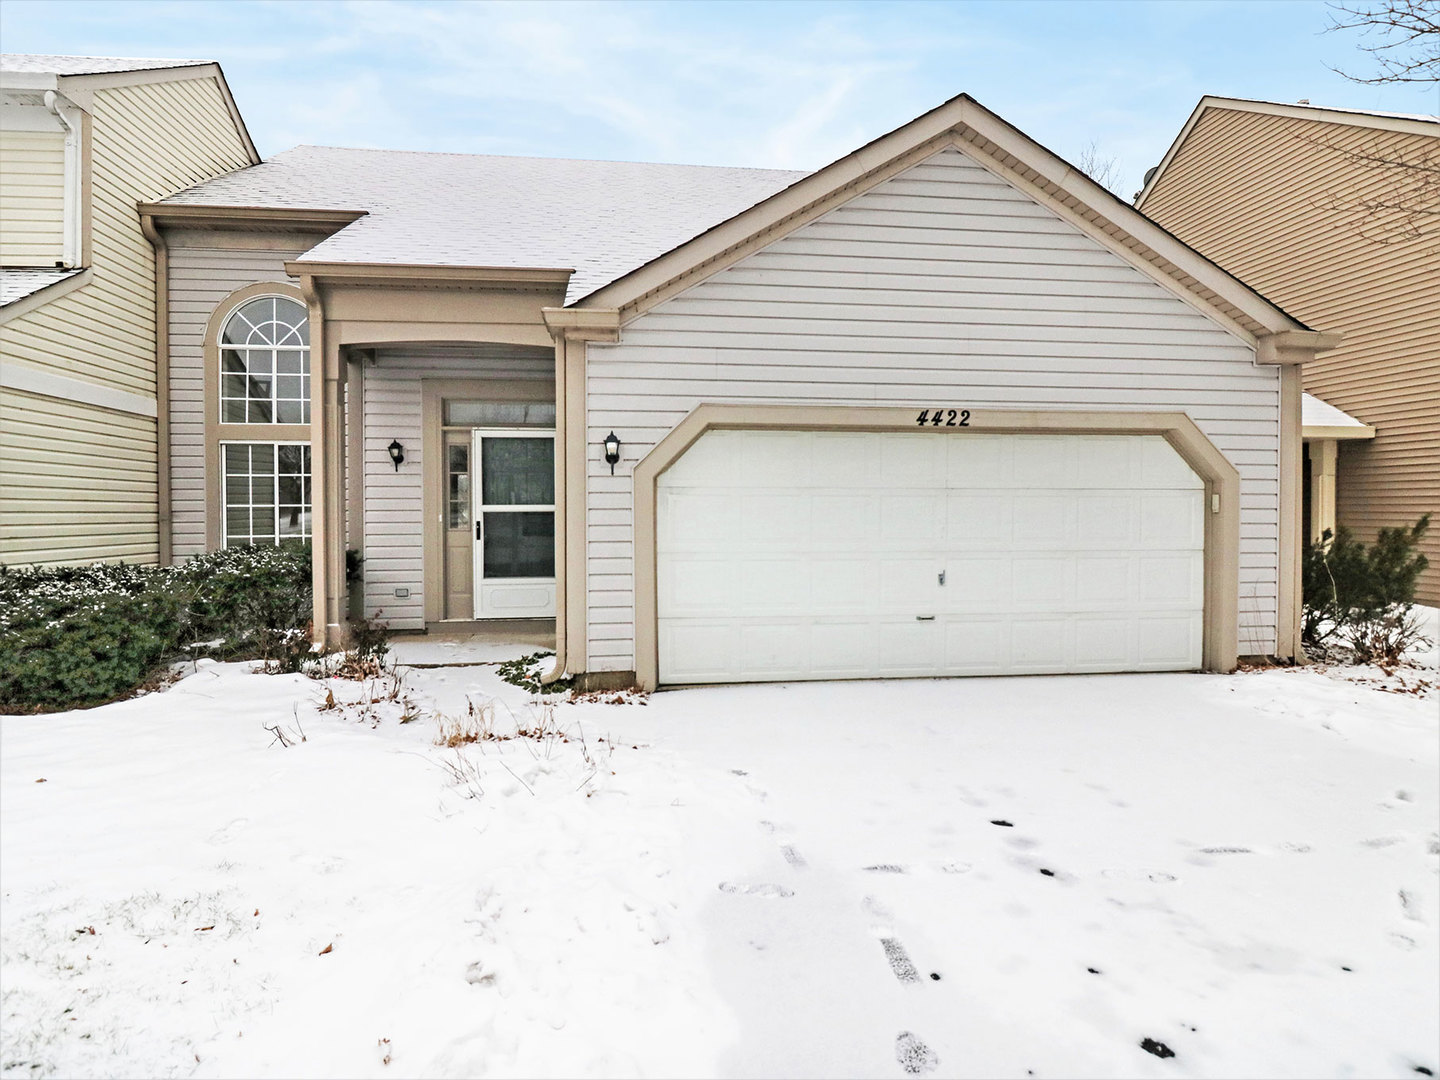 Photo for 4422 Larkspur Lane, LAKE IN THE HILLS, IL 60156 (MLS # 10268725)